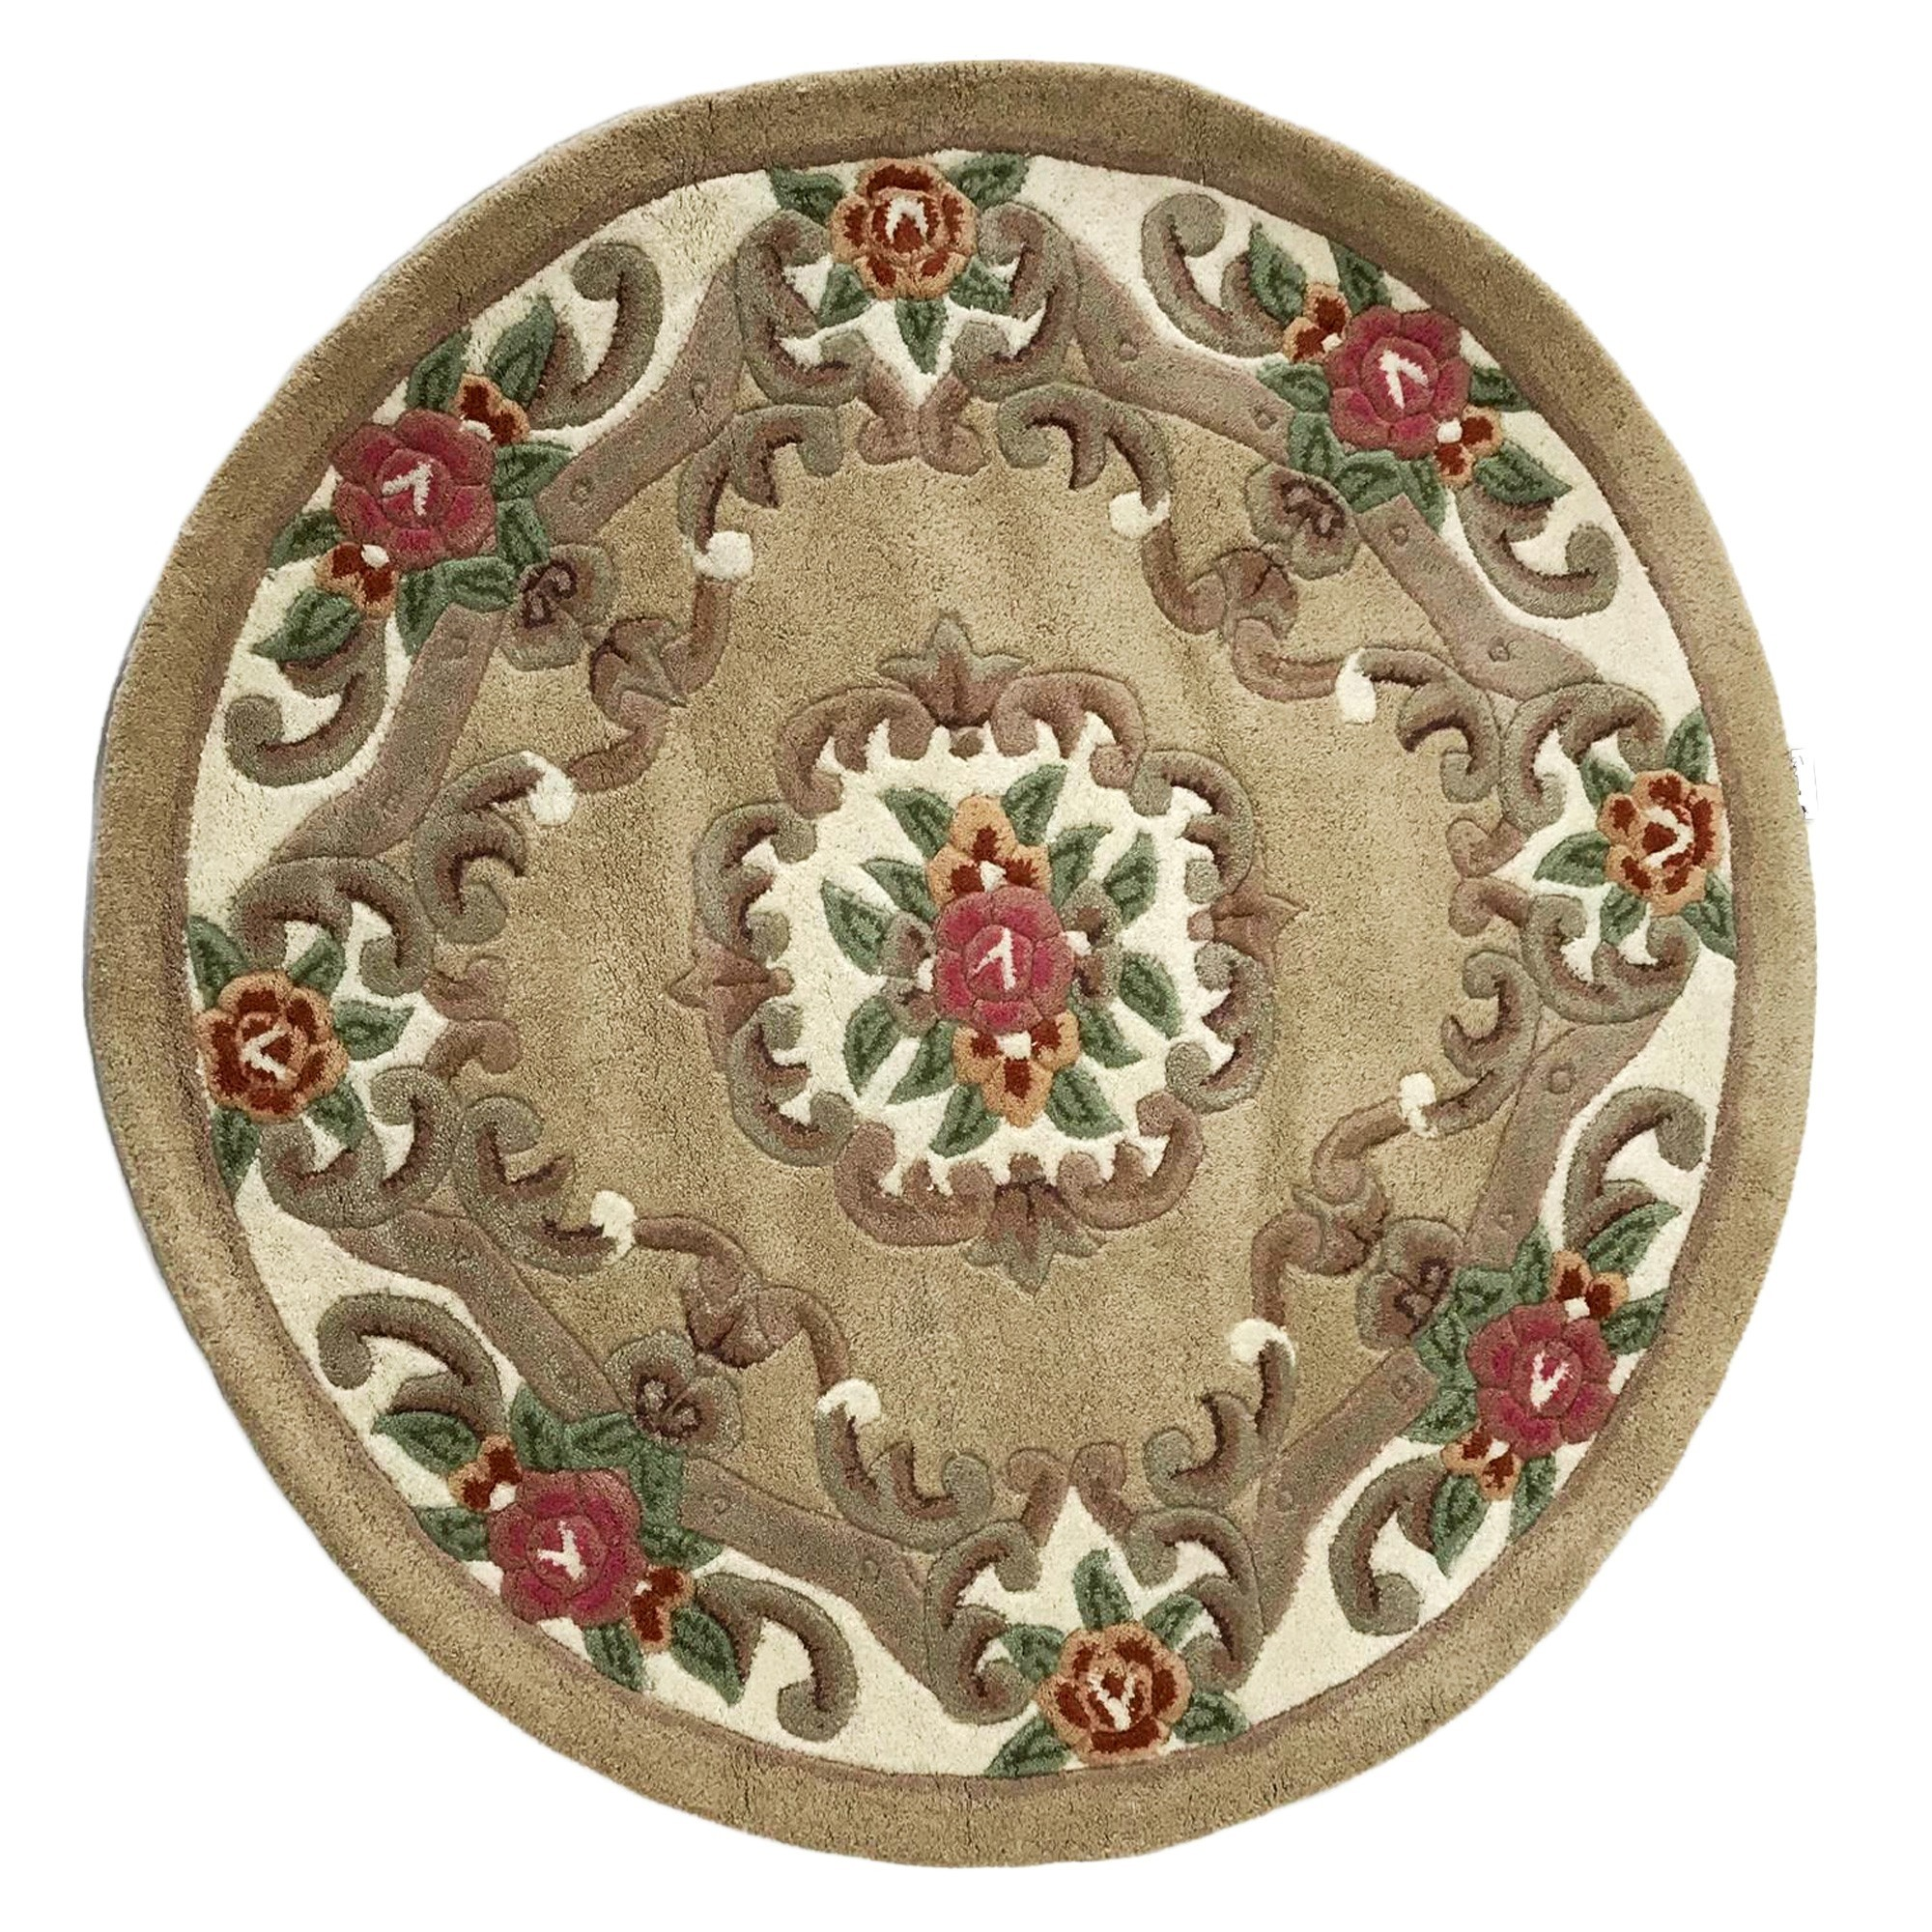 Avalon French Aubusson Round Wool Rug, 120cm, Fawn